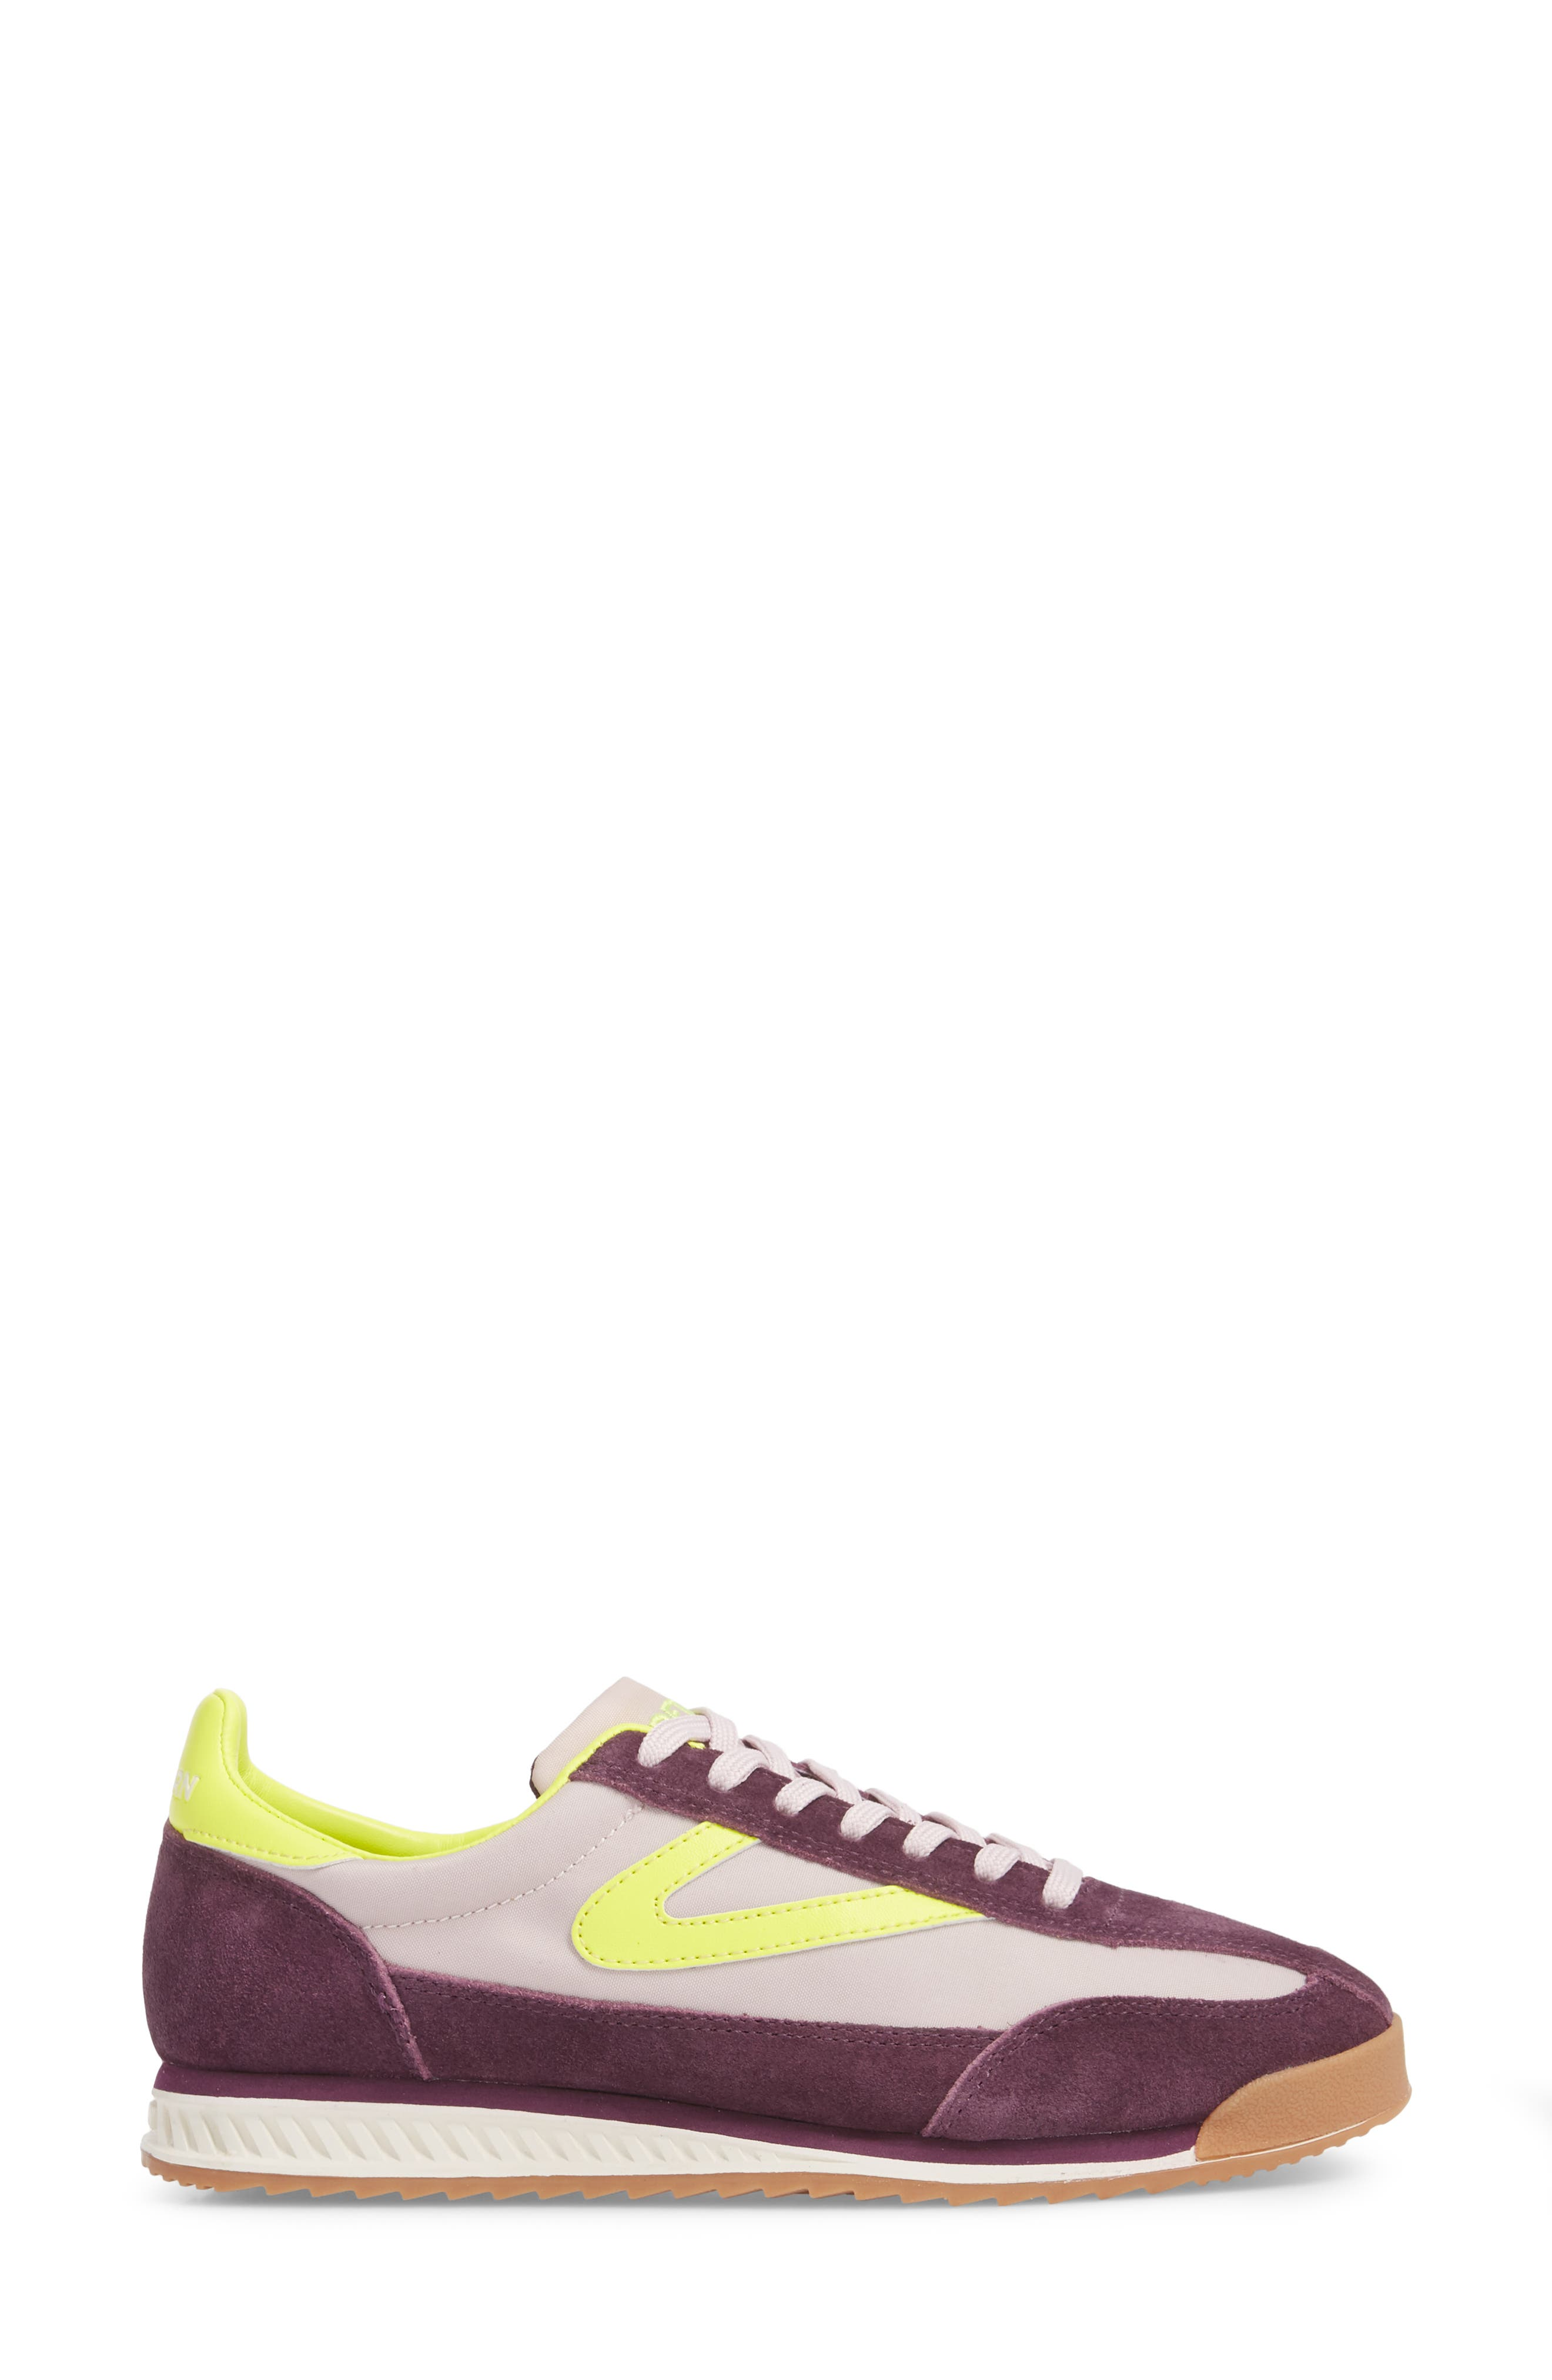 Rawlins 2 Sneaker,                             Alternate thumbnail 3, color,                             EGGPLANT/ SUMMER LILAC/ YELLOW